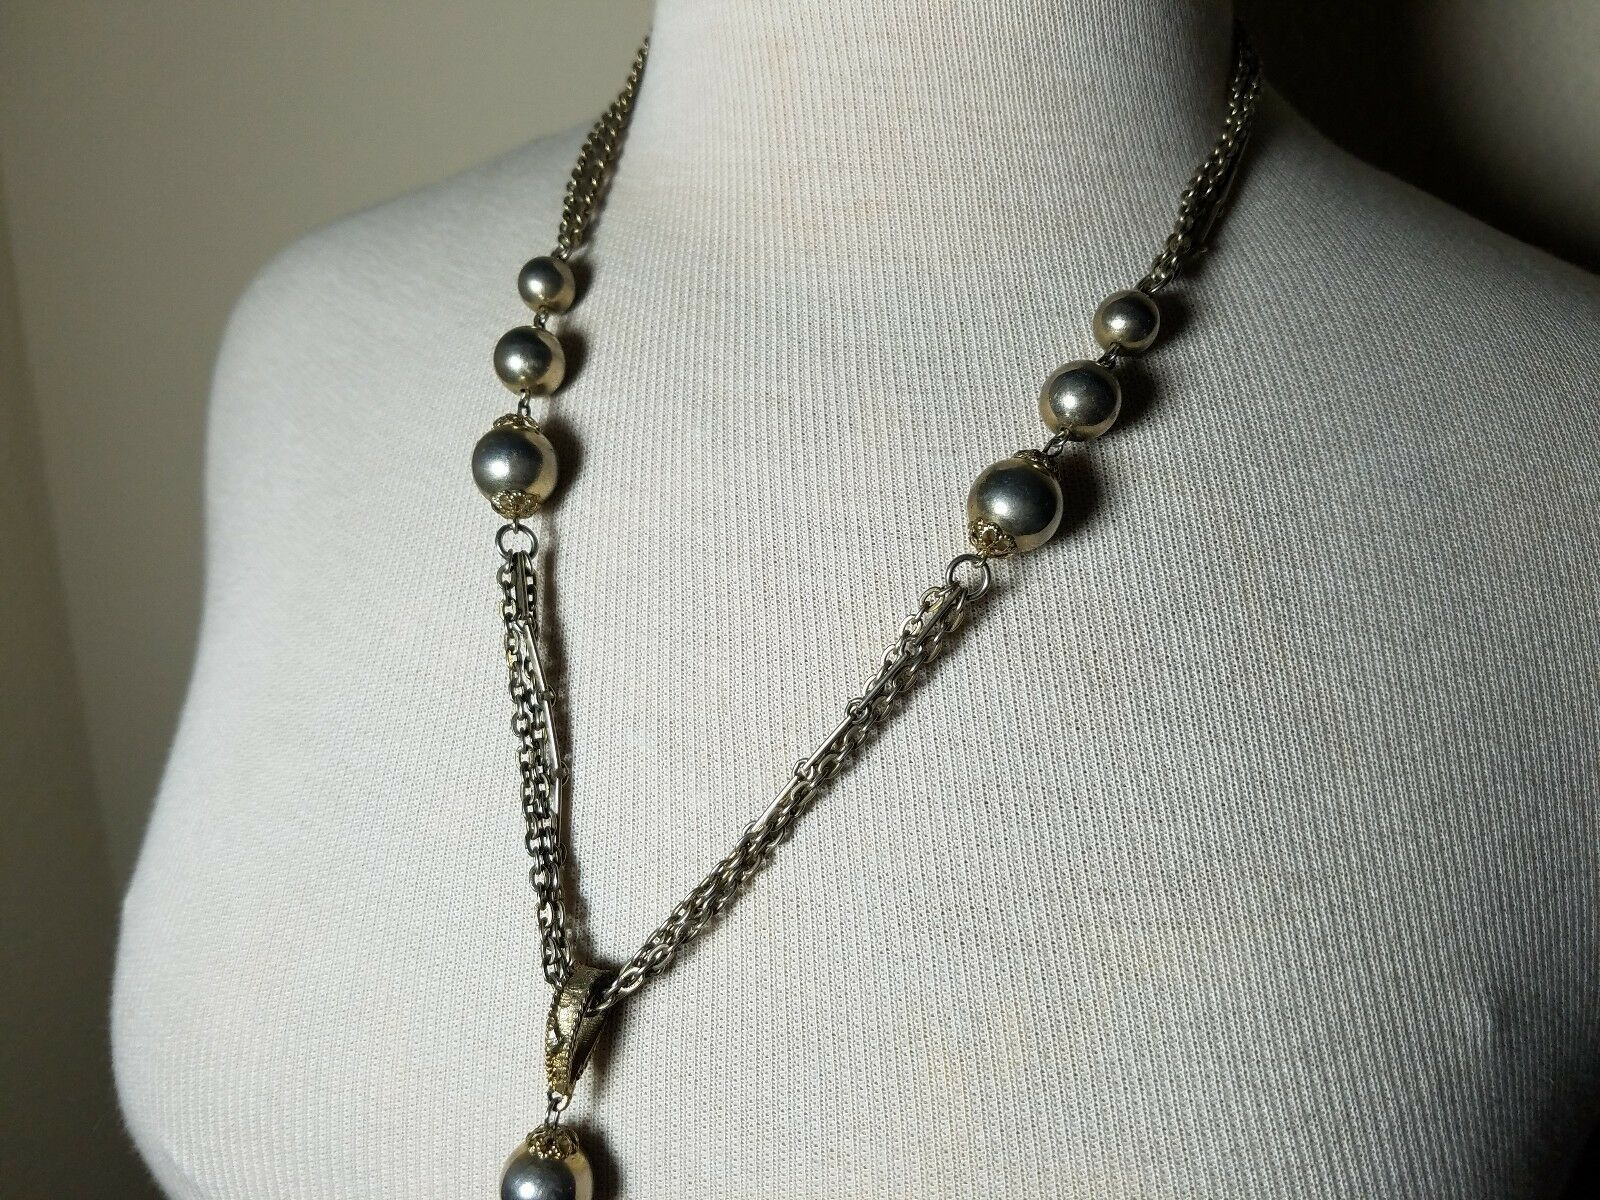 Vintage Fashion Jewelry Set Chain Necklace & Earrings Metal Silver Tone Bead